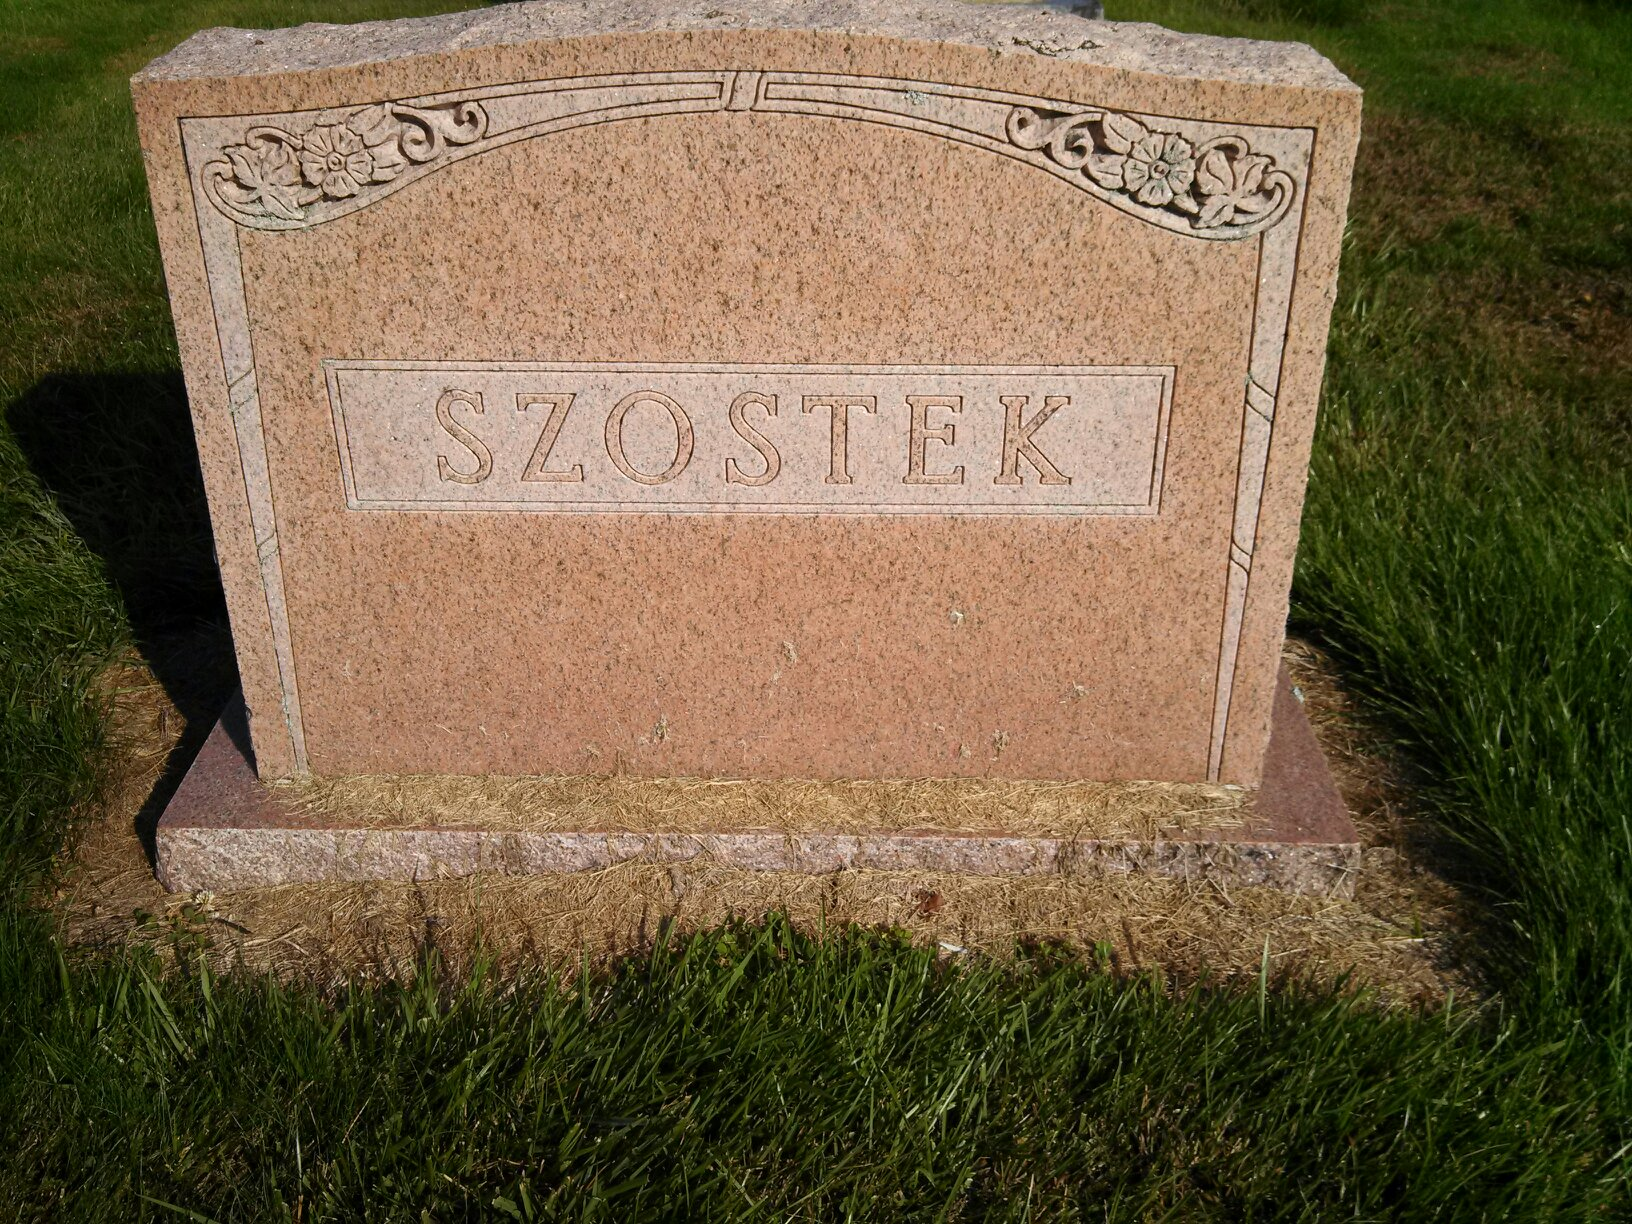 Peter j szostek 1917 1972 find a grave memorial death event date 22 may 1972 event place springfield massachusetts certificate number 019983 birth date birthplace massachusetts pete szosteks aiddatafo Image collections